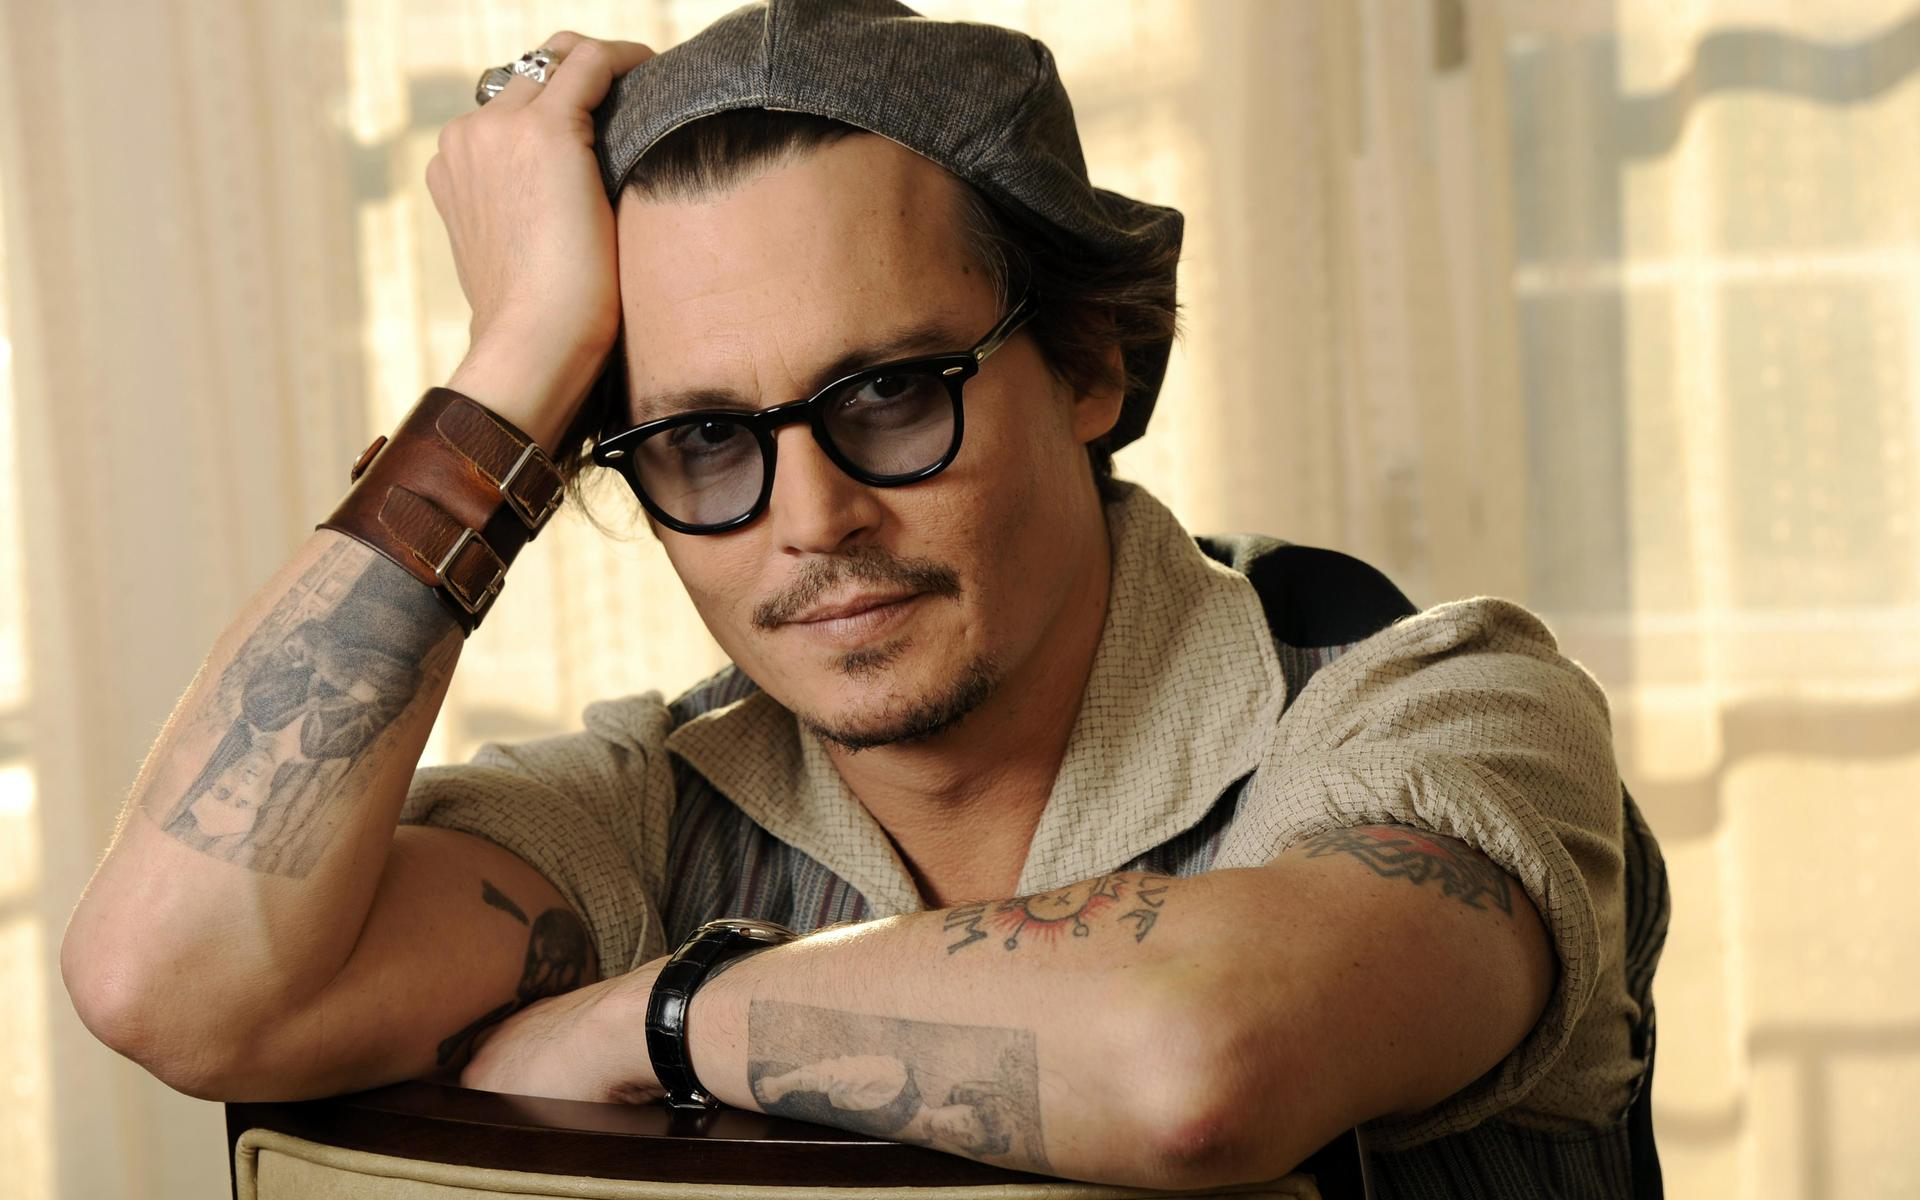 Johnny Depp Wallpaper 1739 1920x1200 px